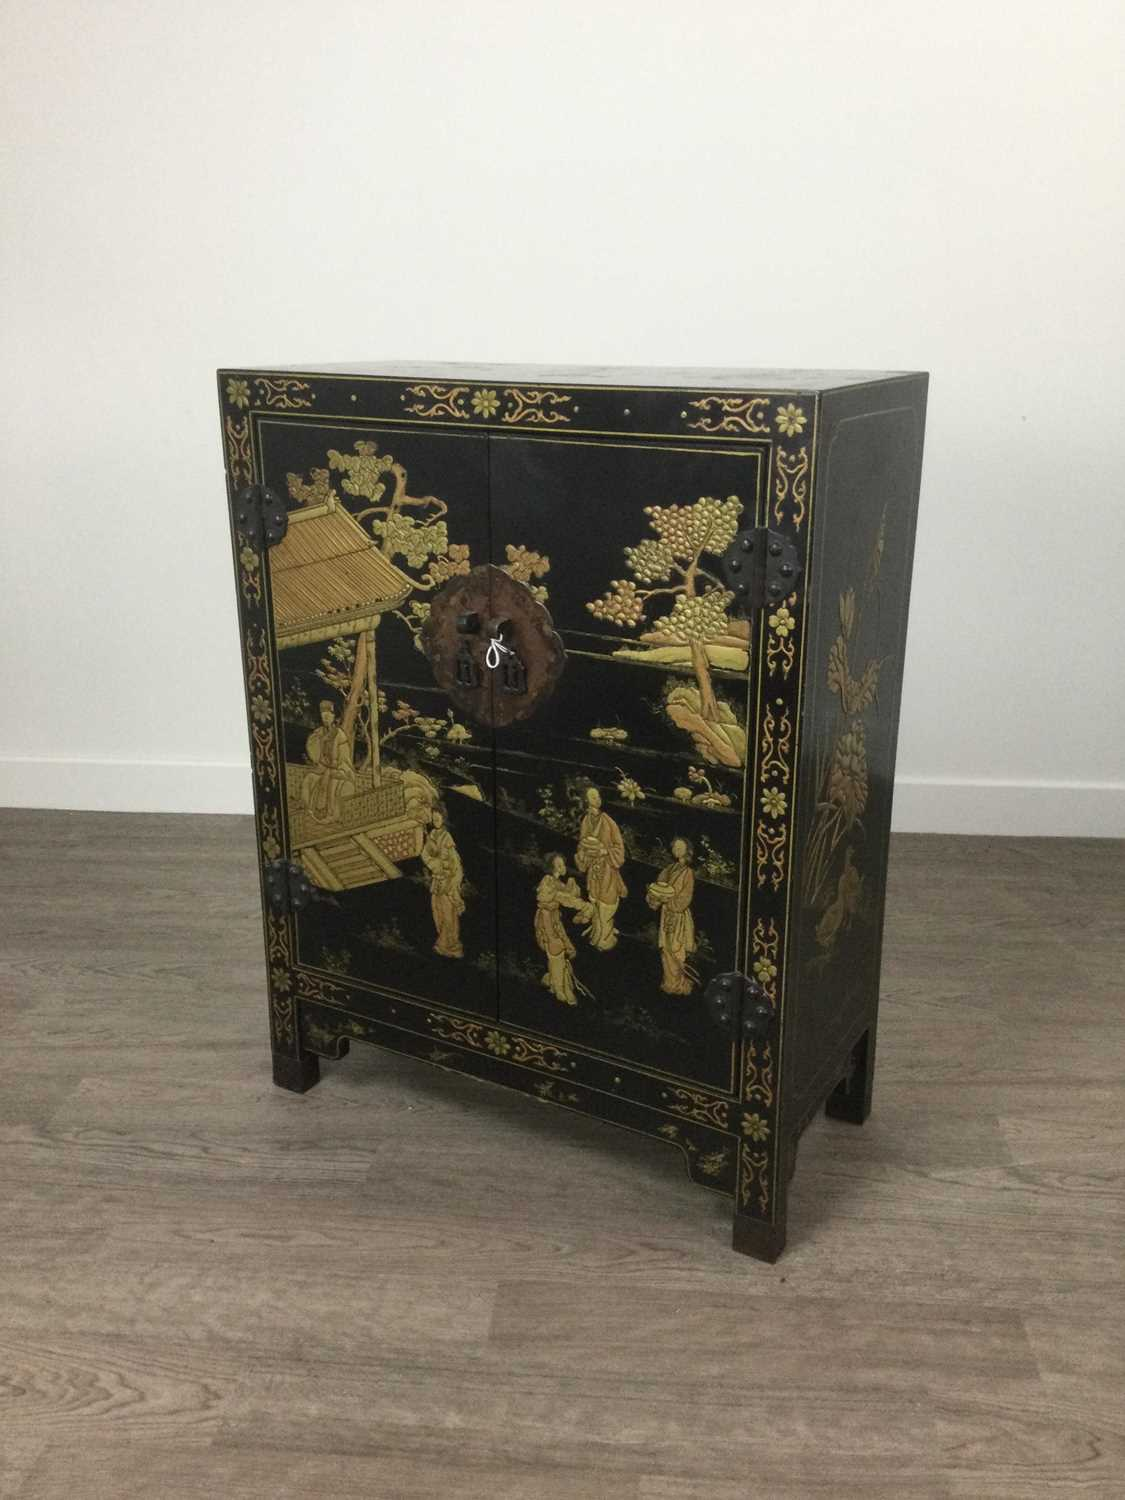 Lot 1608 - A 20TH CENTURY JAPANESE TWO DOOR CUPBOARD